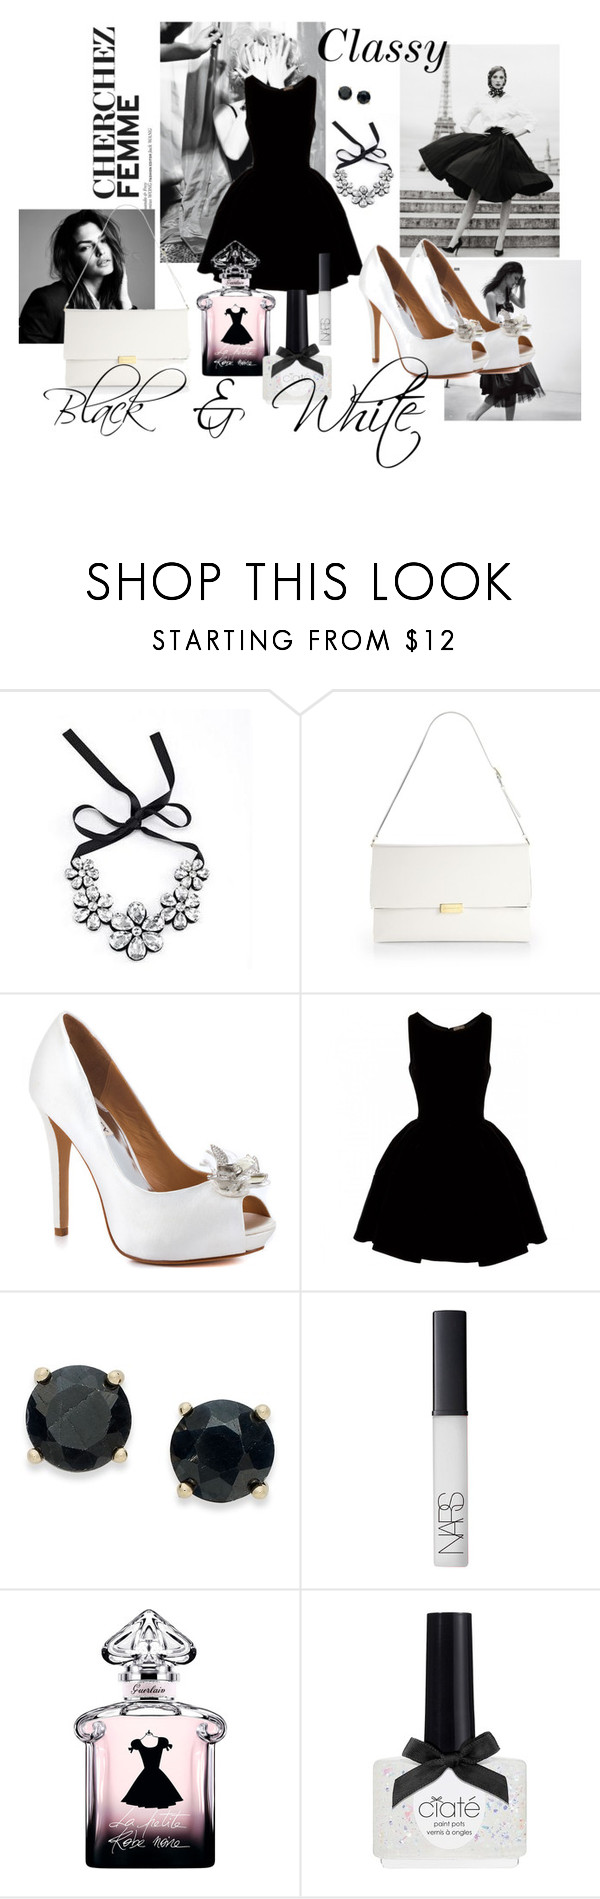 """Black & White Fashion"" by fabulousbyangelika ❤ liked on Polyvore featuring Moonbasa, STELLA McCARTNEY, Badgley Mischka, Alaïa, Victoria Townsend, NARS Cosmetics, Guerlain, Ciaté and topic"